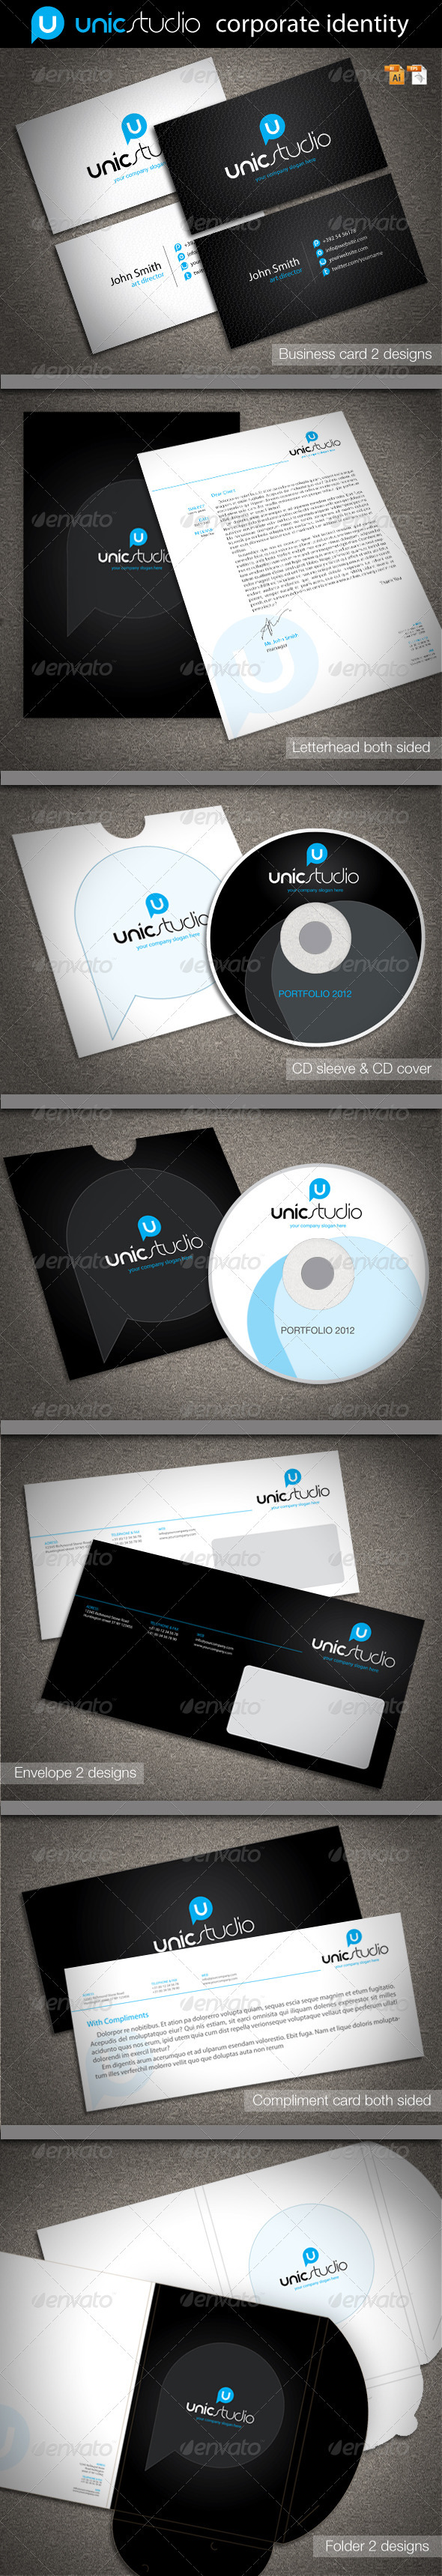 GraphicRiver Unic Studio Corporate Identity 2084281